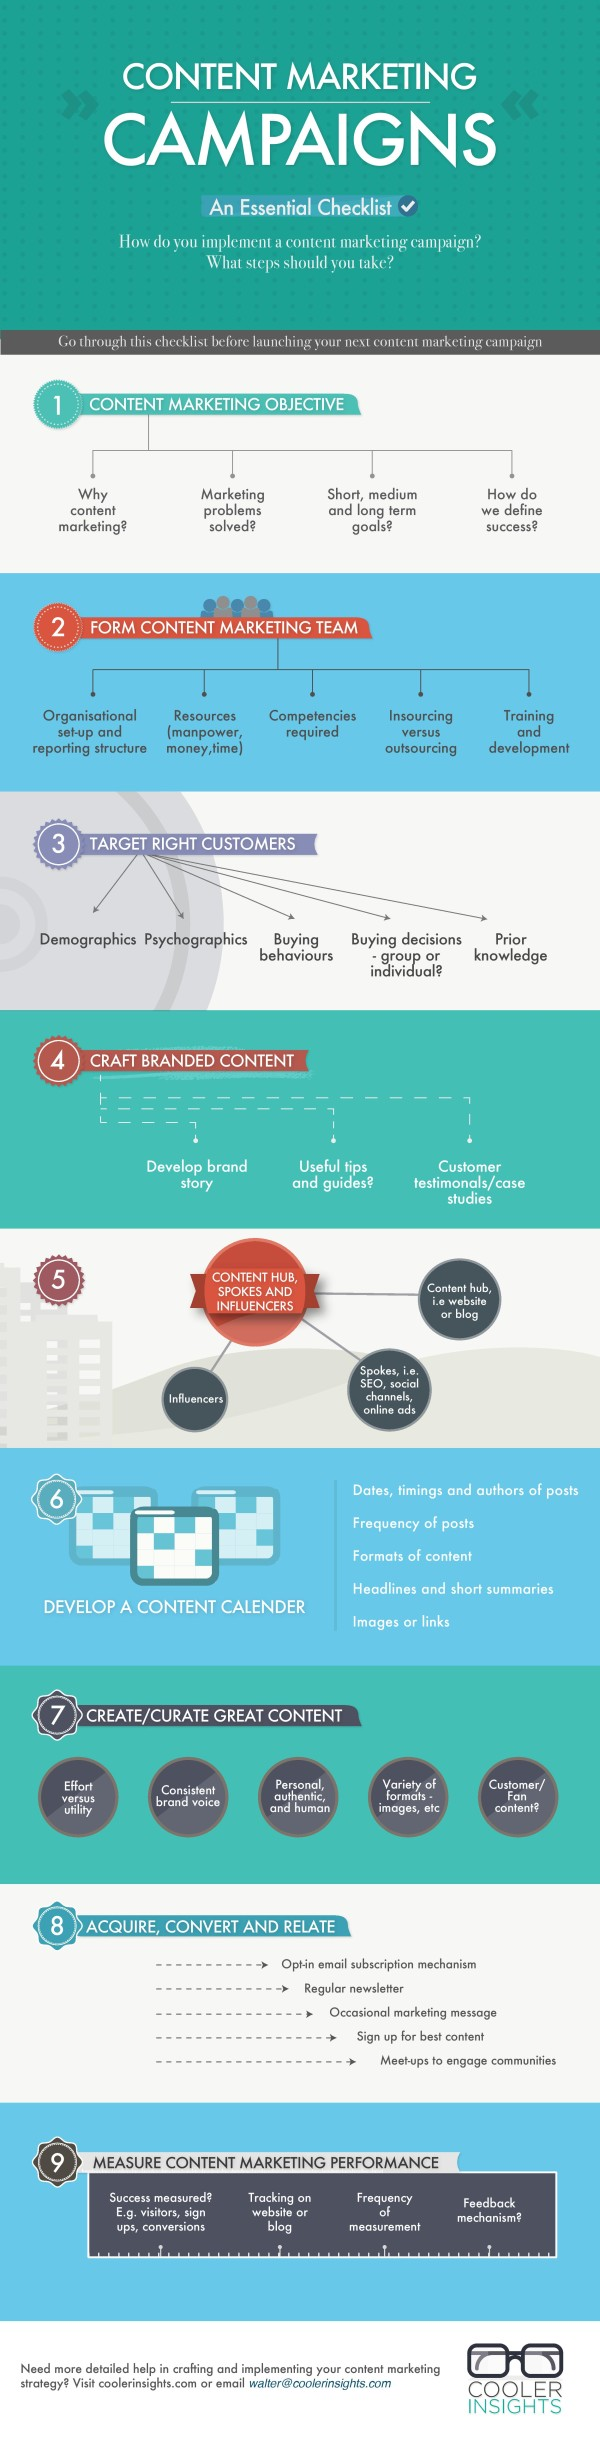 Content Marketing Campaigns – An Essential Checklist [Infographic]